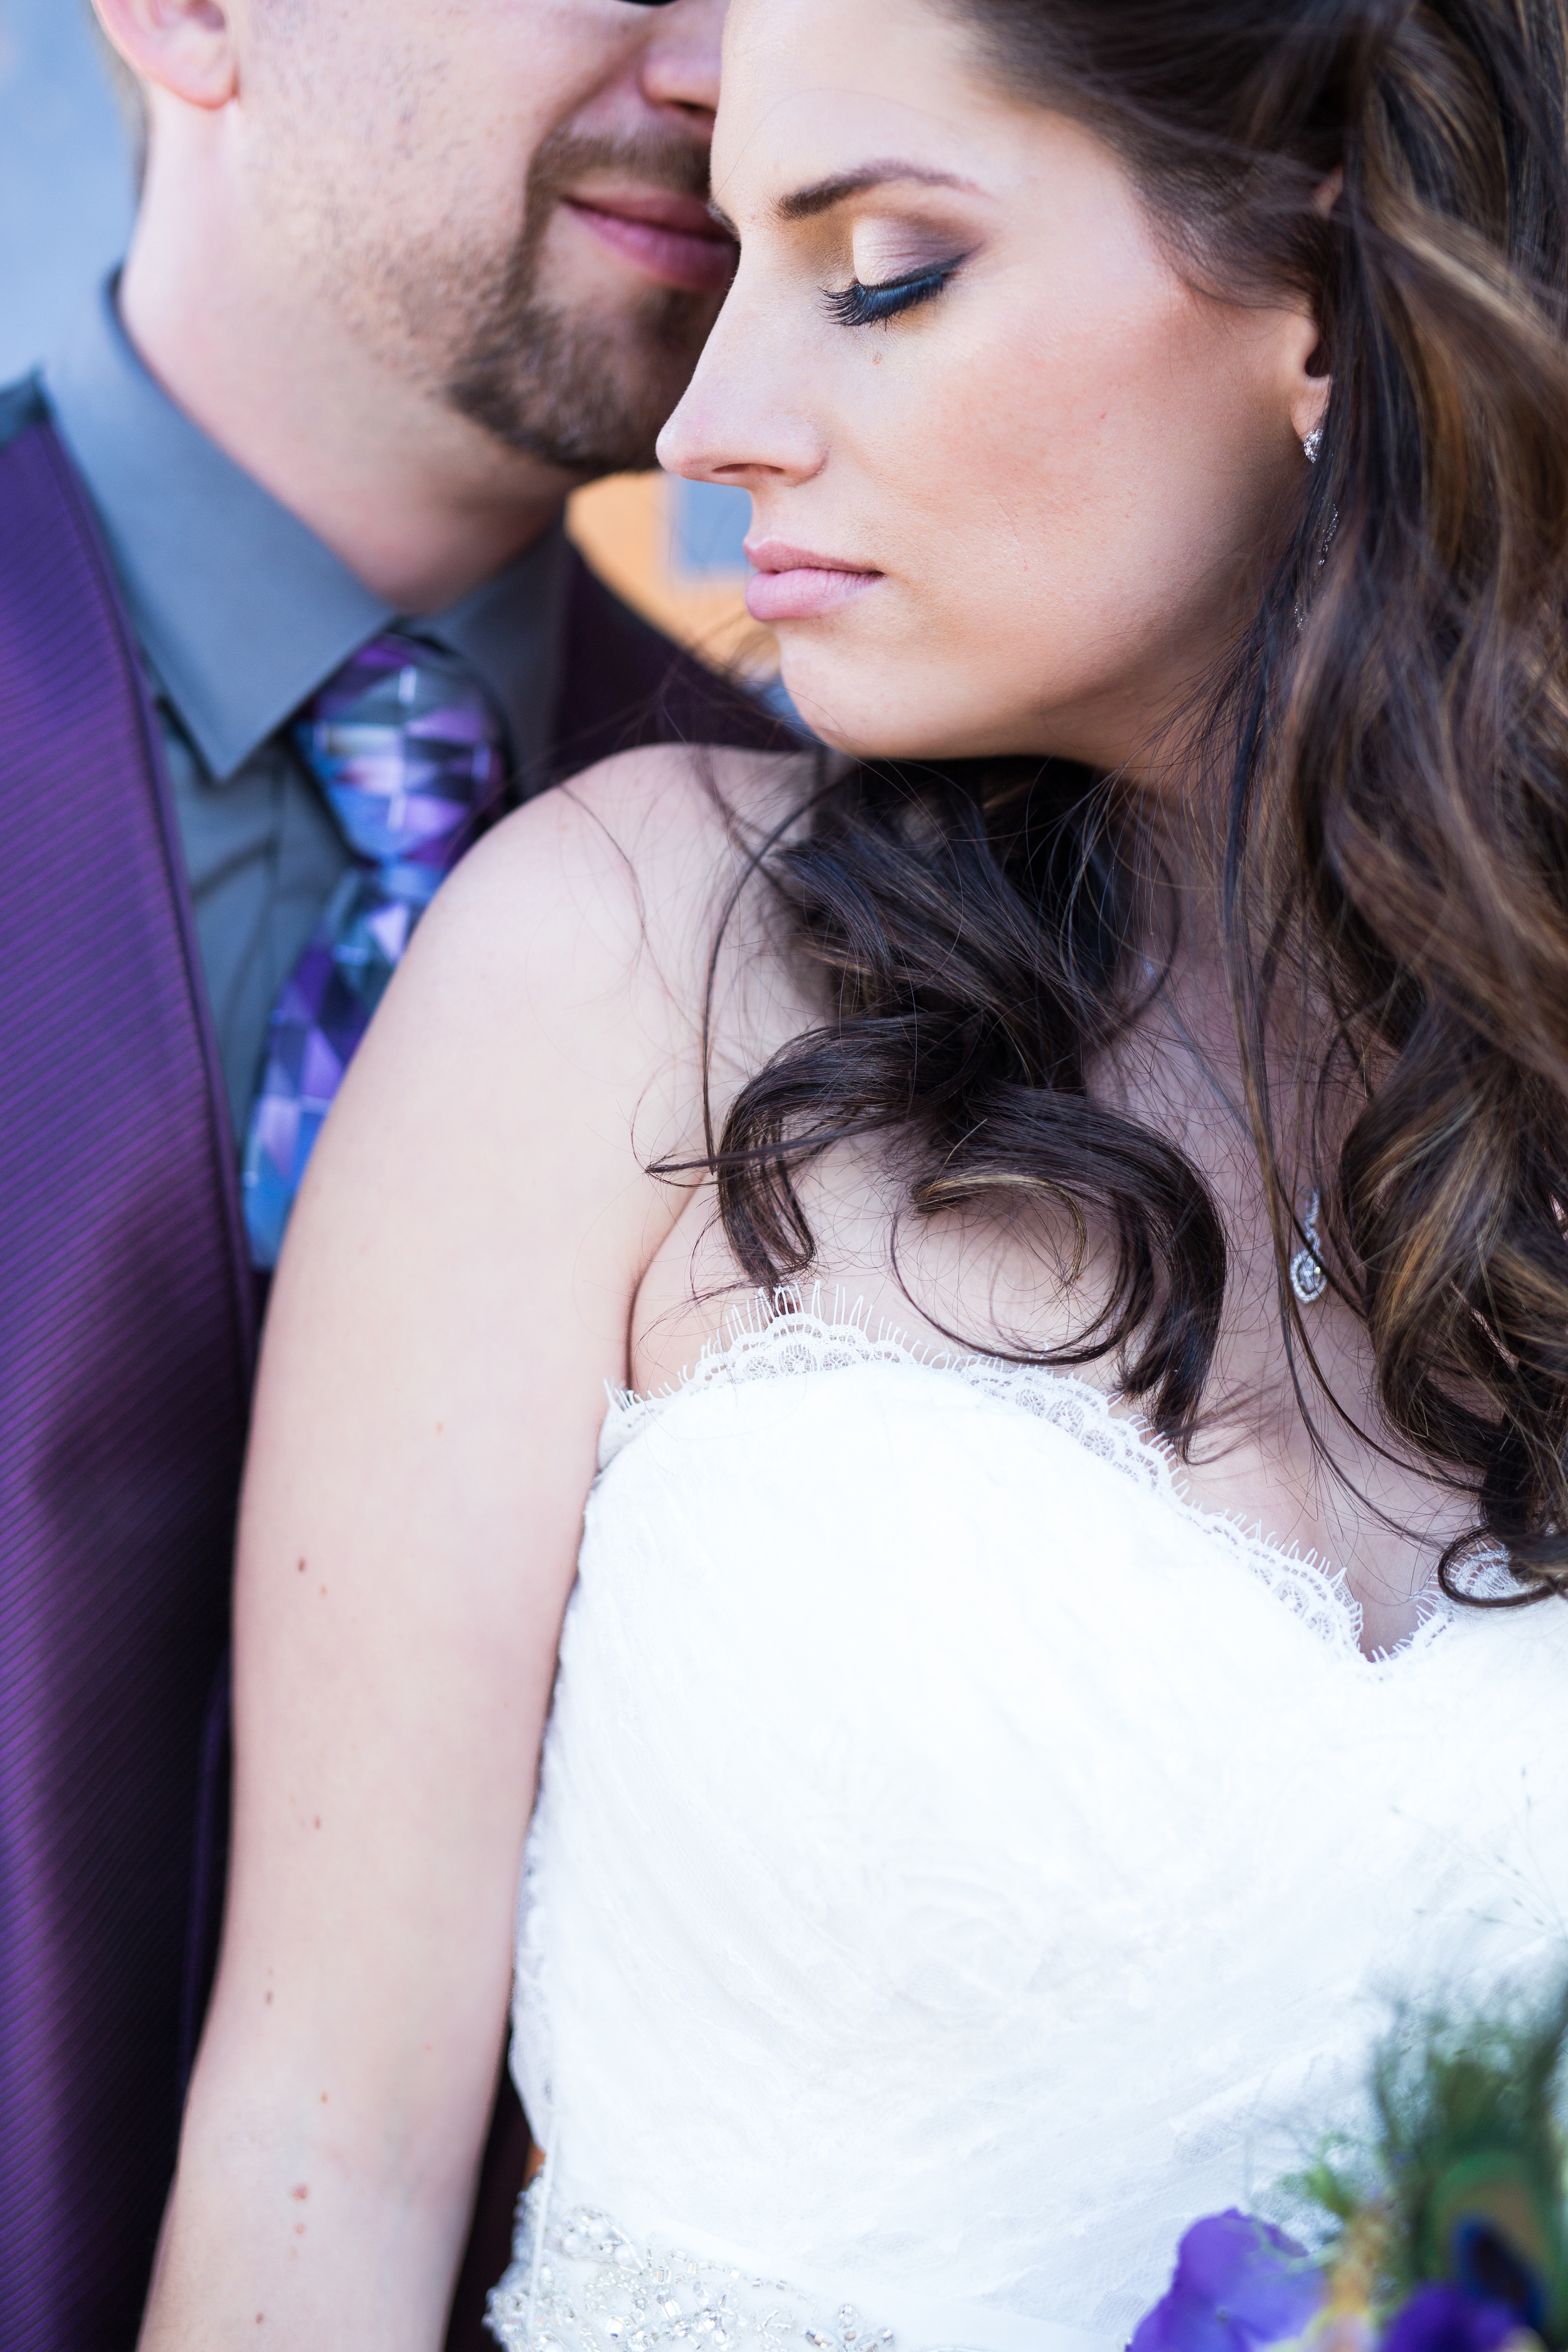 Jessica_and_Steven_Canale_Wedding_924-(ZF-8983-86352-1-002).jpg